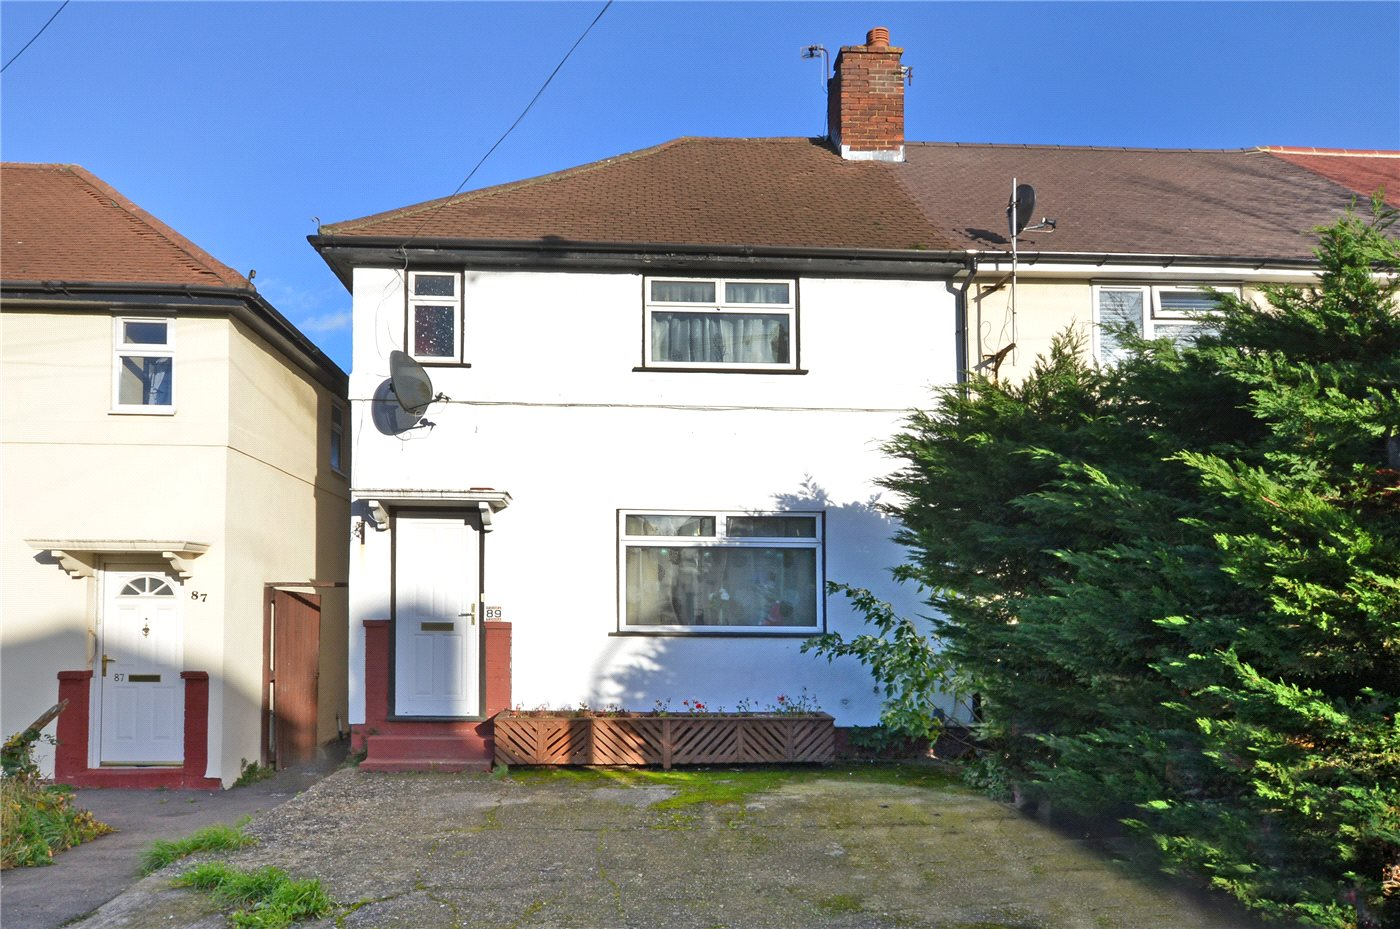 3 Bedrooms End Of Terrace House for sale in Browning Avenue, Worcester Park, KT4